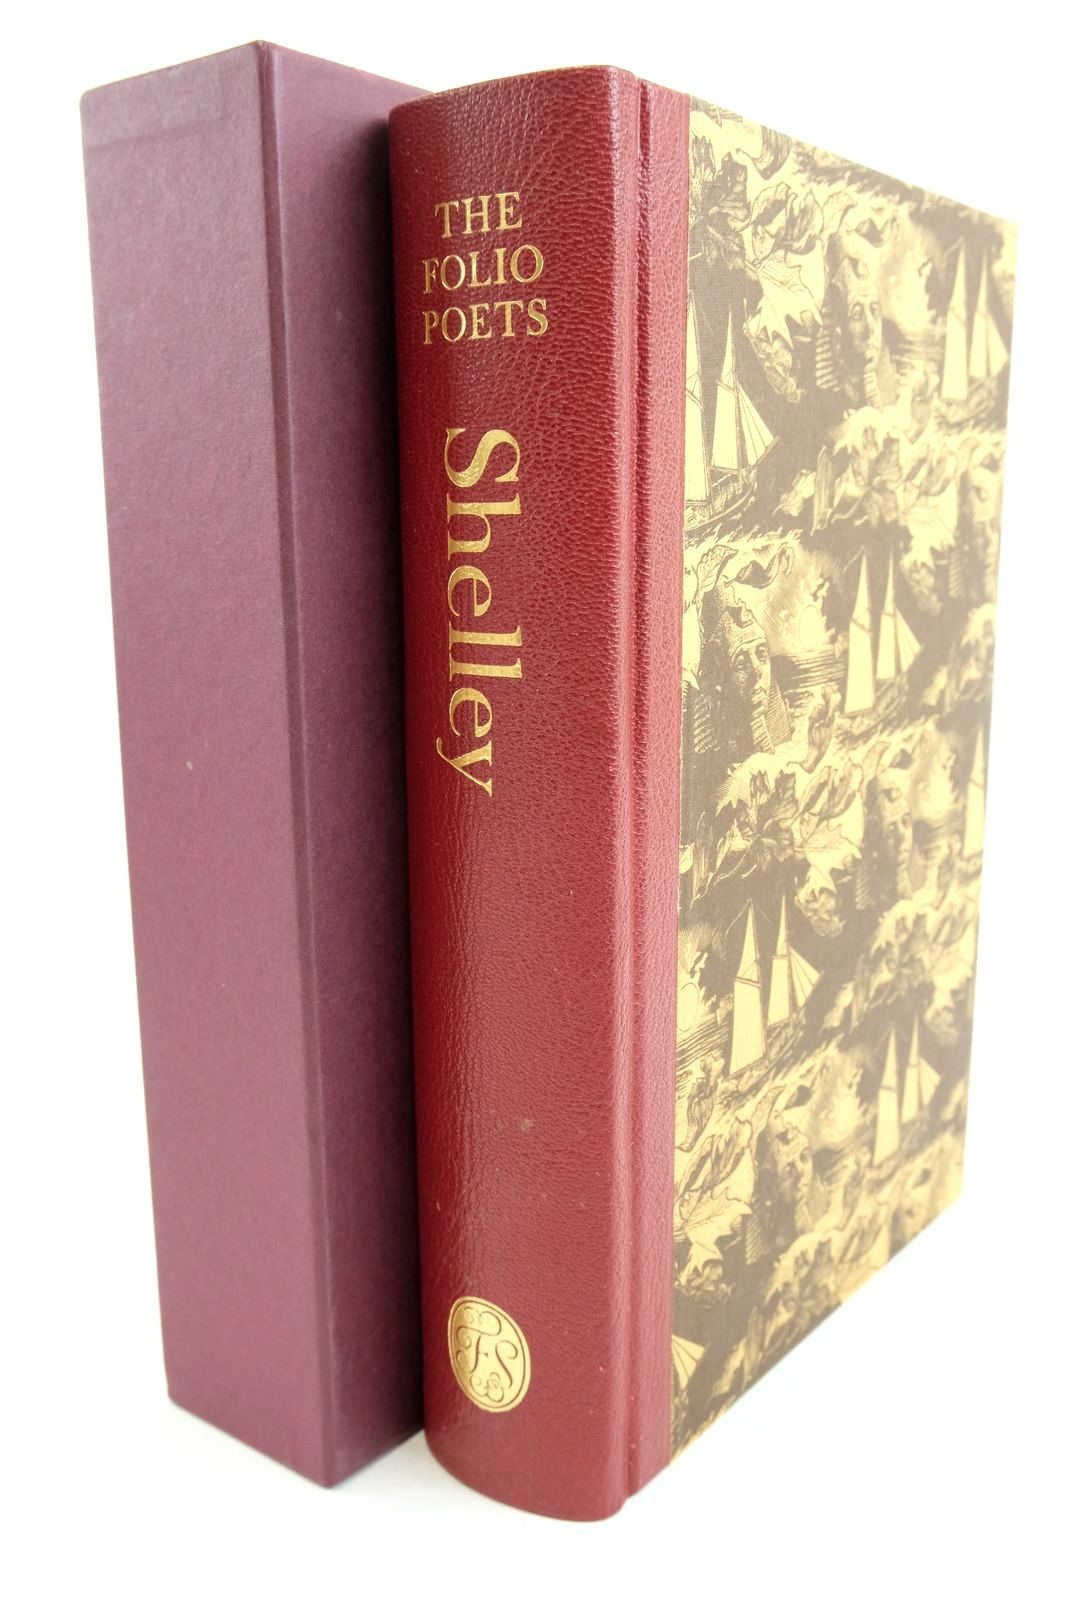 Photo of SHELLEY COLLECTED POEMS written by Shelley,  Bysshe, Percy illustrated by Brett, Simon published by Folio Society (STOCK CODE: 1321021)  for sale by Stella & Rose's Books